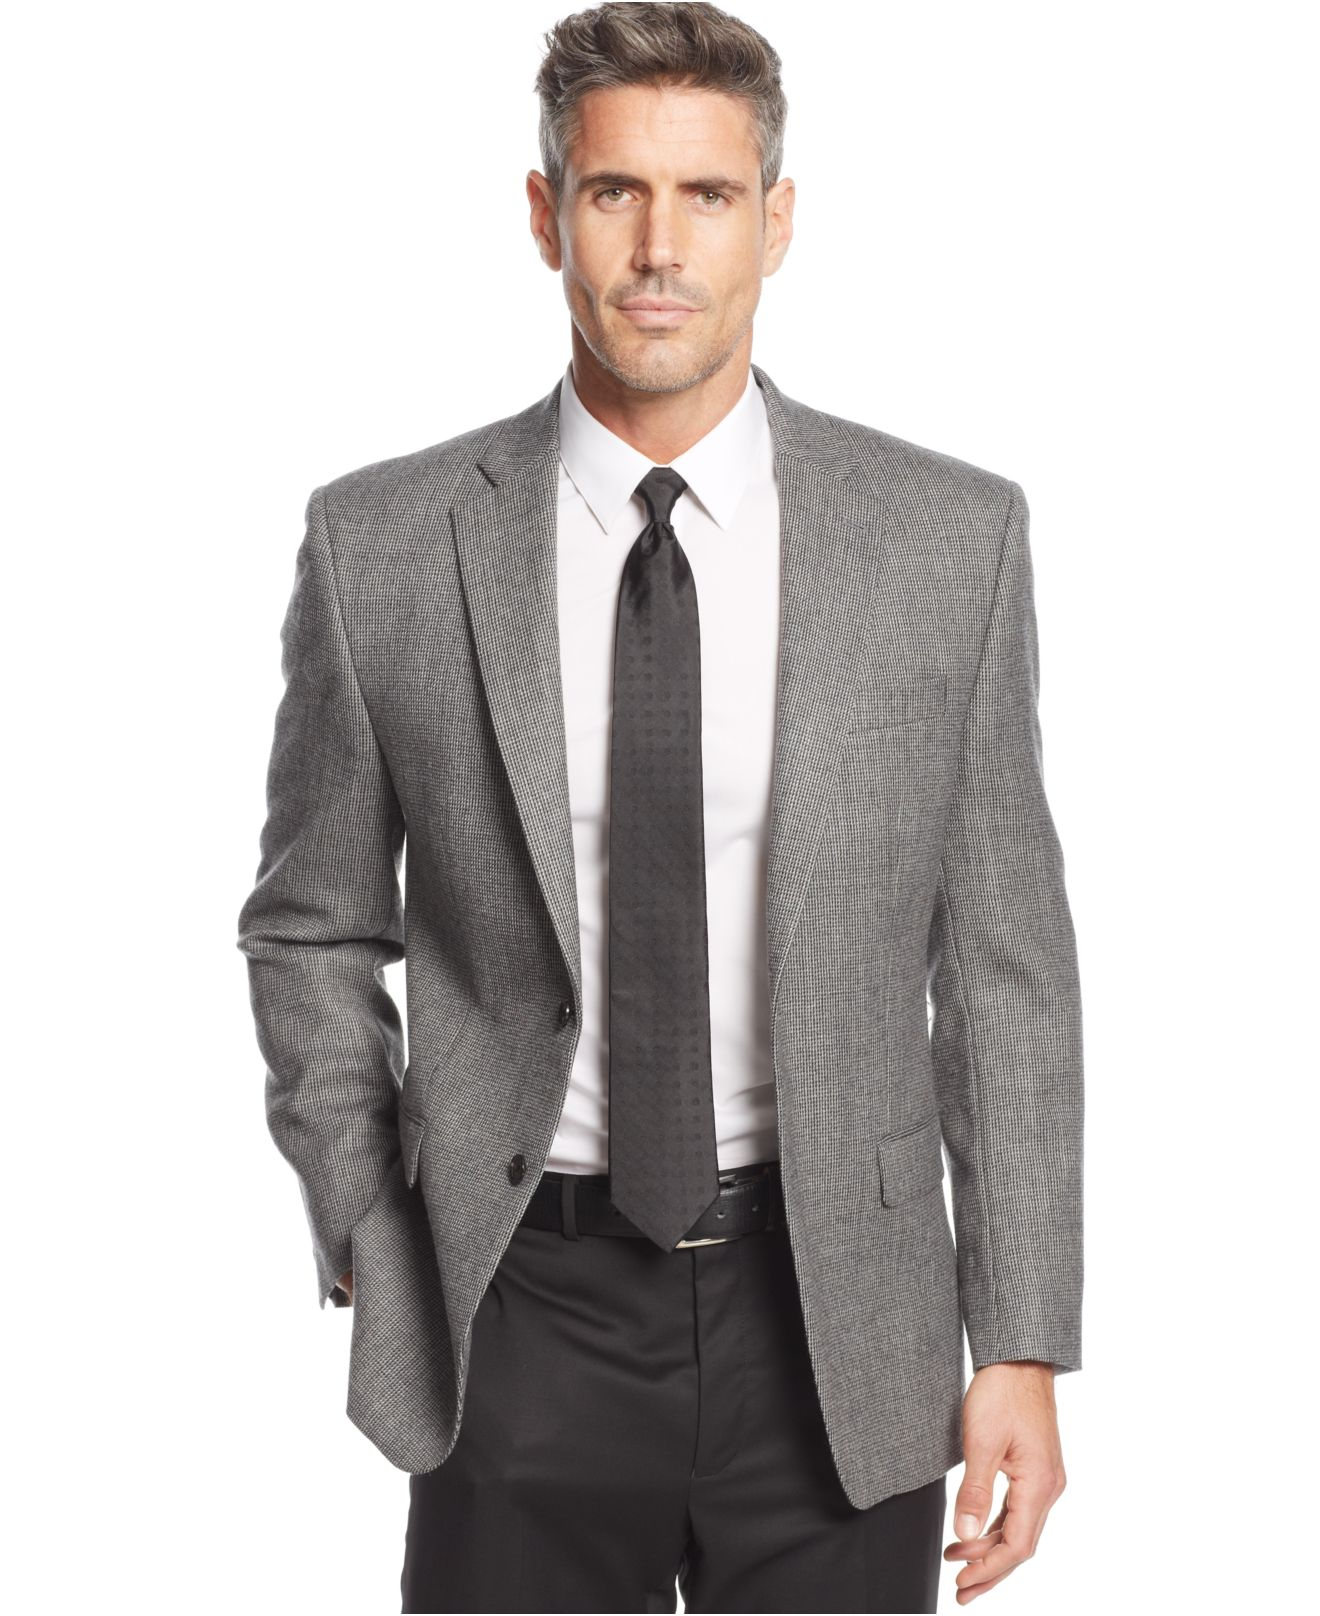 Jul 22, · So, if you have a dark color Sport Coat, try a light color pants like light brown, beige, cream or white if you feel adventurous. I would use 2 (maybe 3) of the pieces you have. The Sport Coat and the dress shirts.